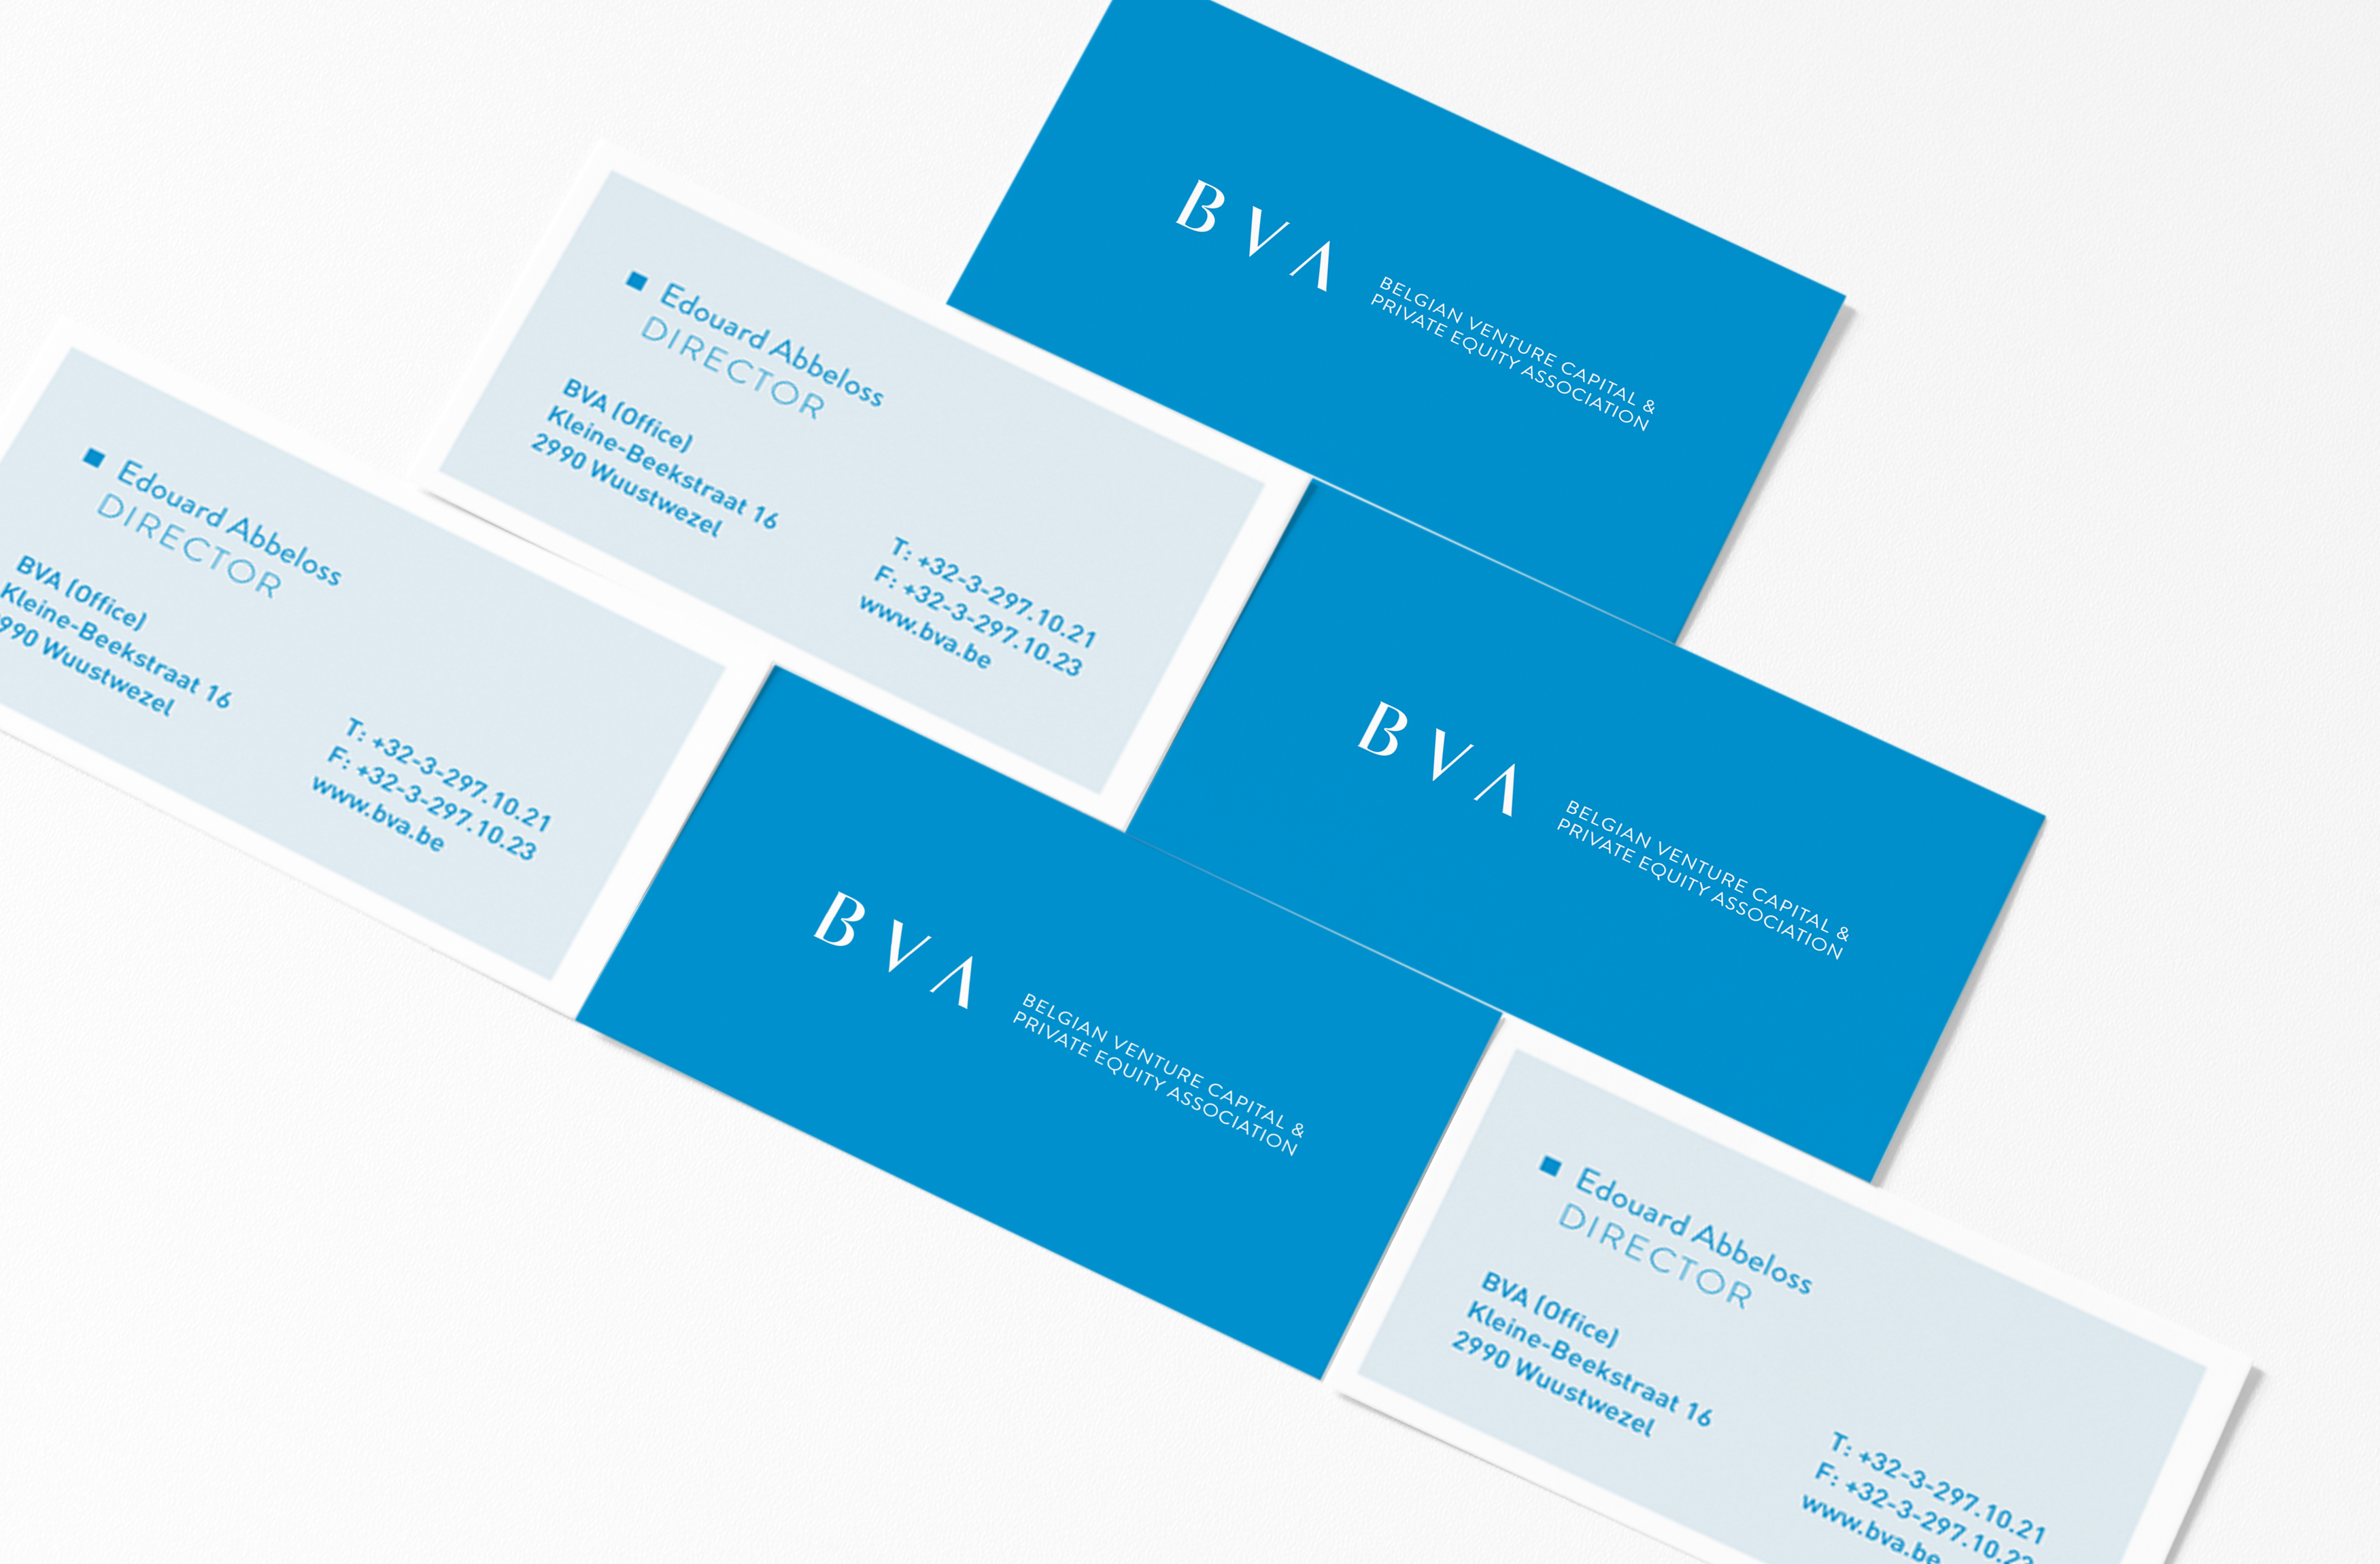 Indentite-graphique-BVA-1